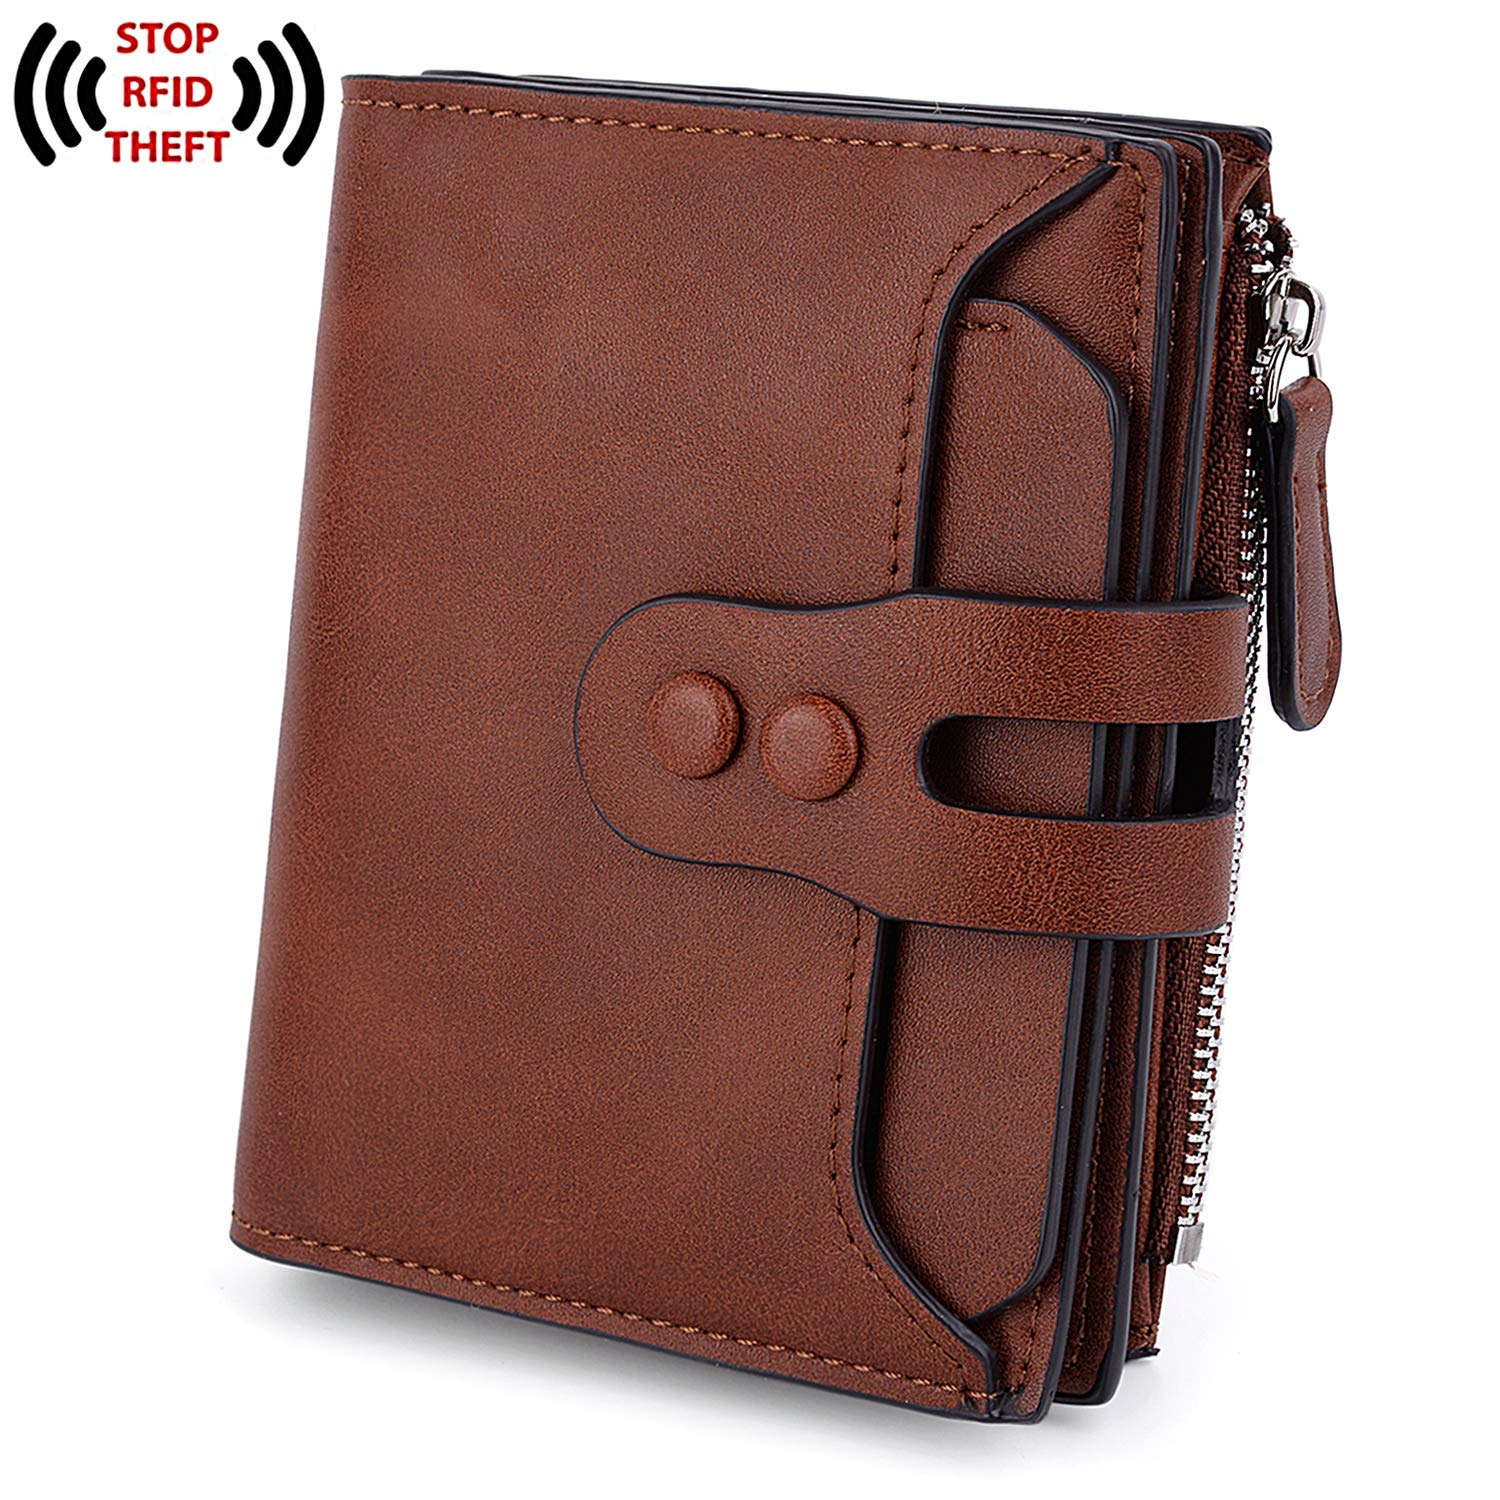 UTO Women's RFID Blocking PU Matte Leather Wallet Card Holder Organizer Girls Small Cute Coin Purse with Snap Closure 215 Brown